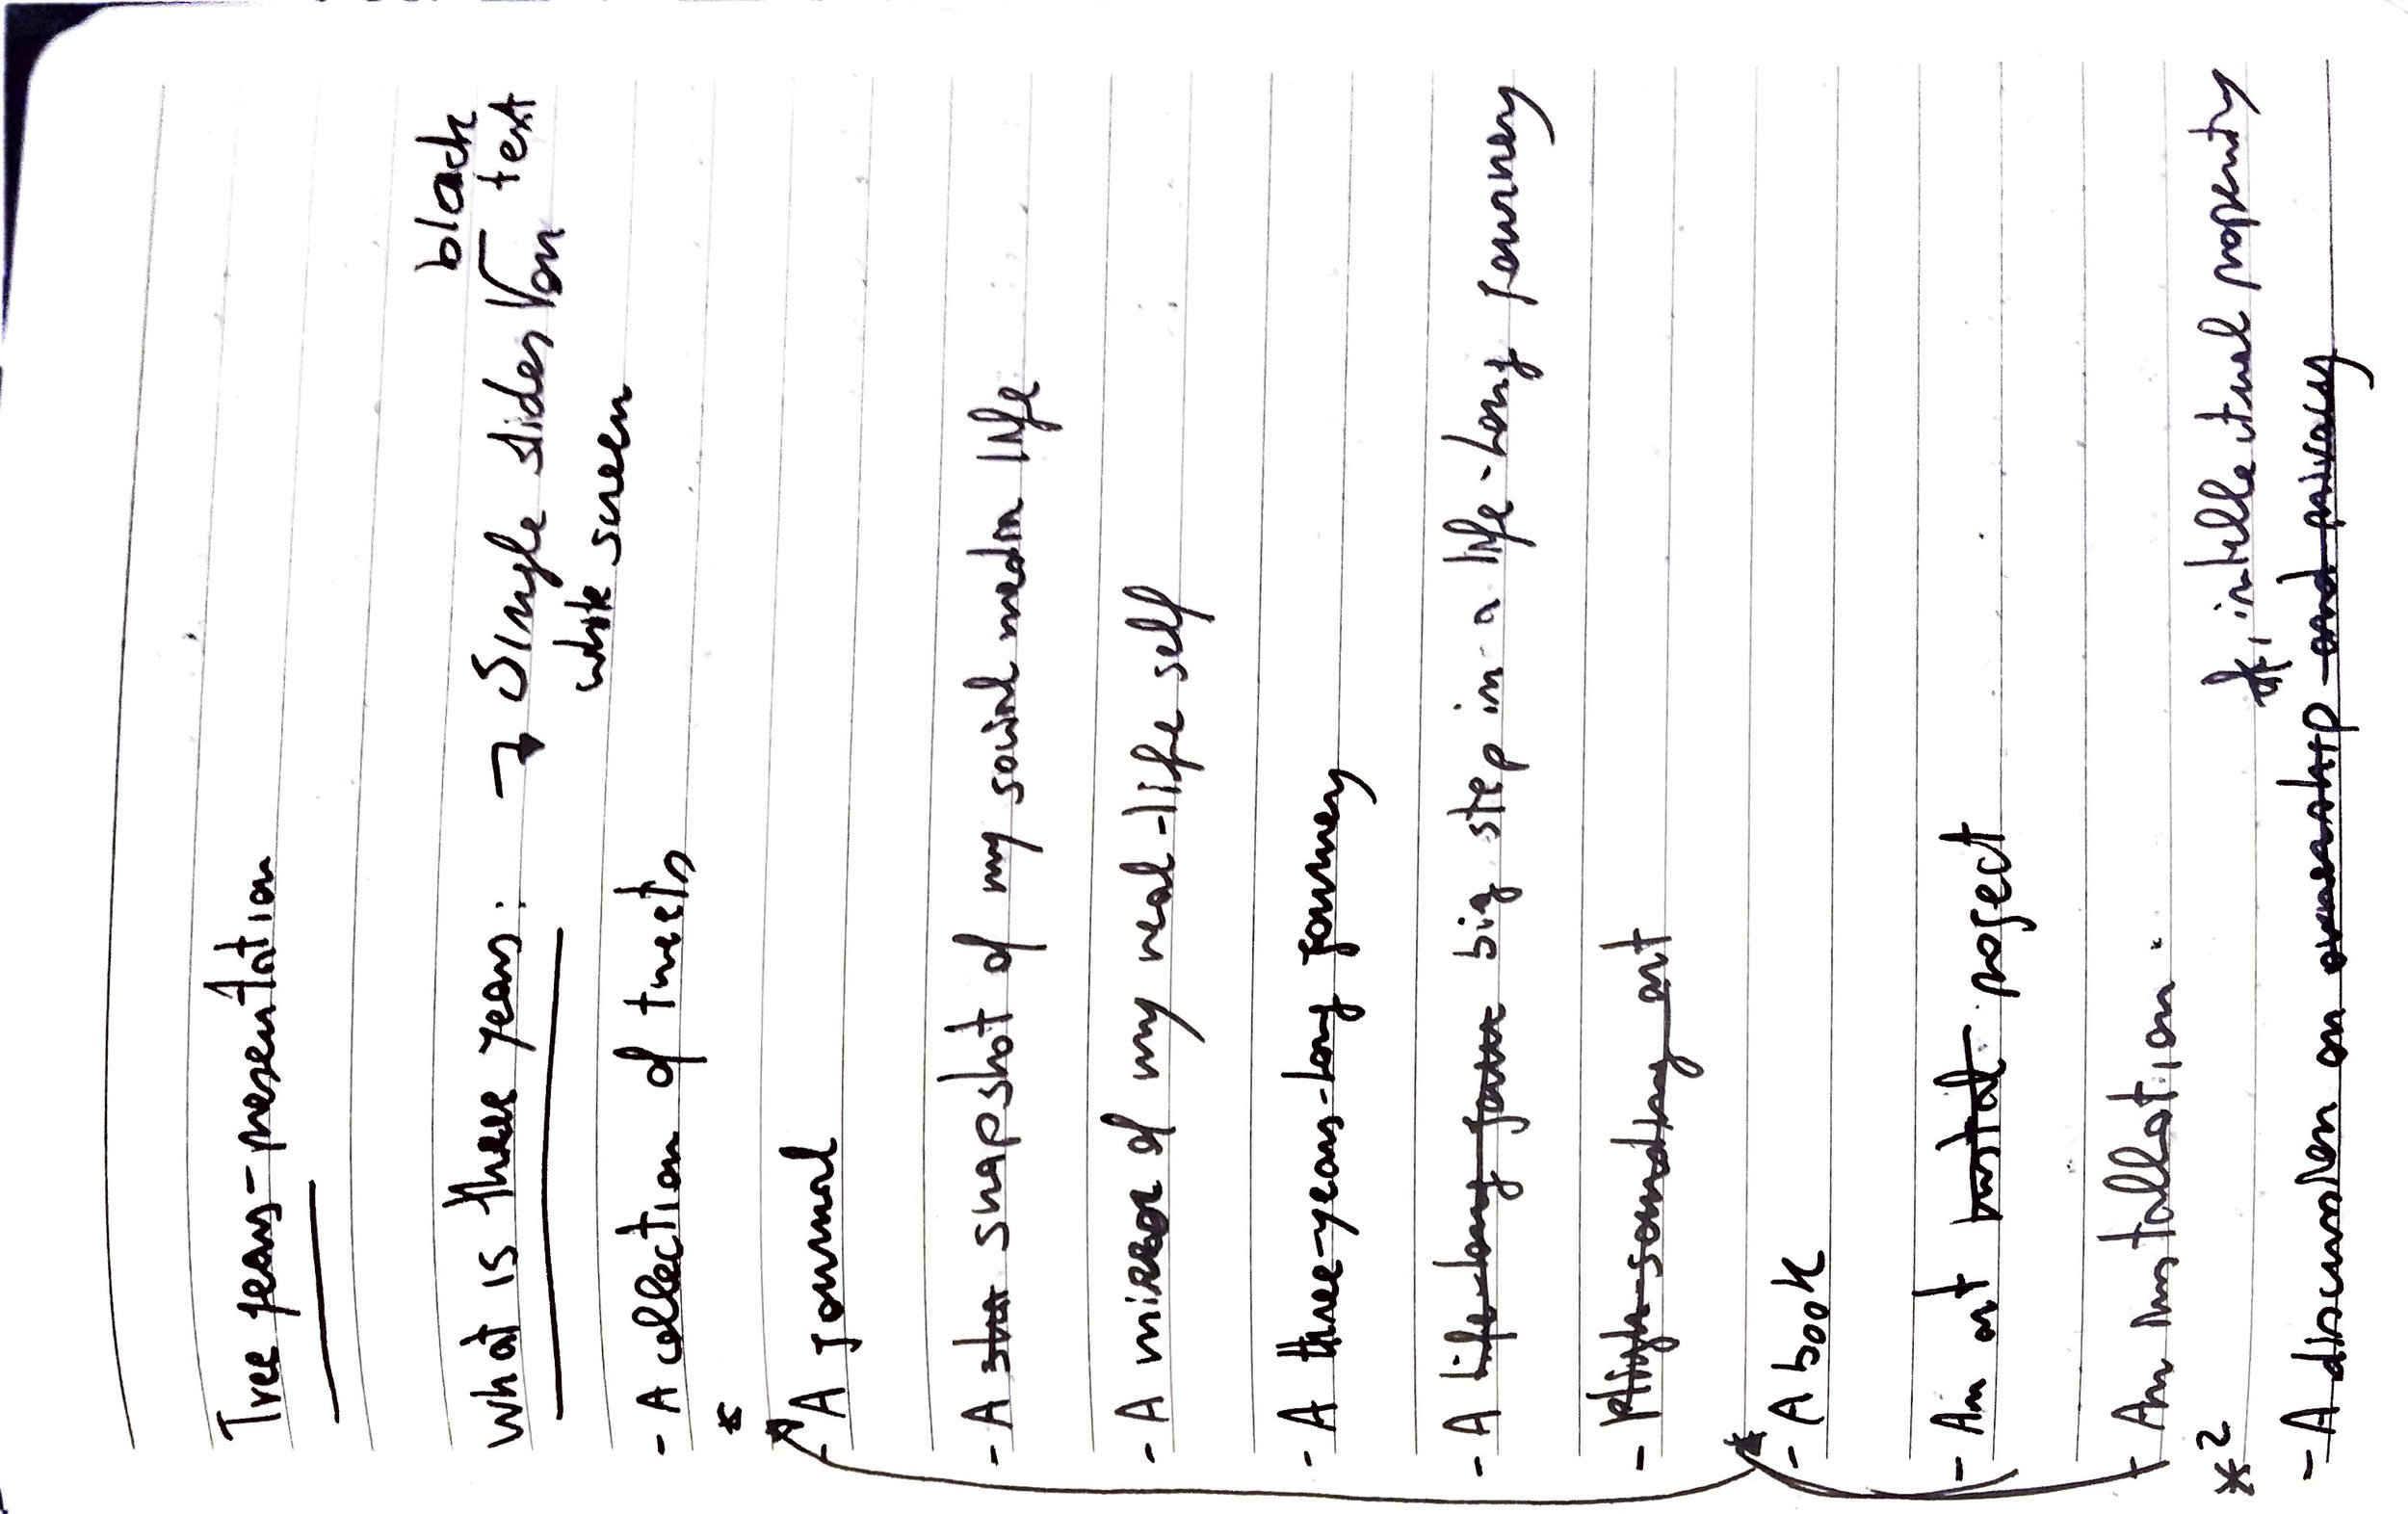 black and pink notebooks_Page_53_Image_0001.jpg